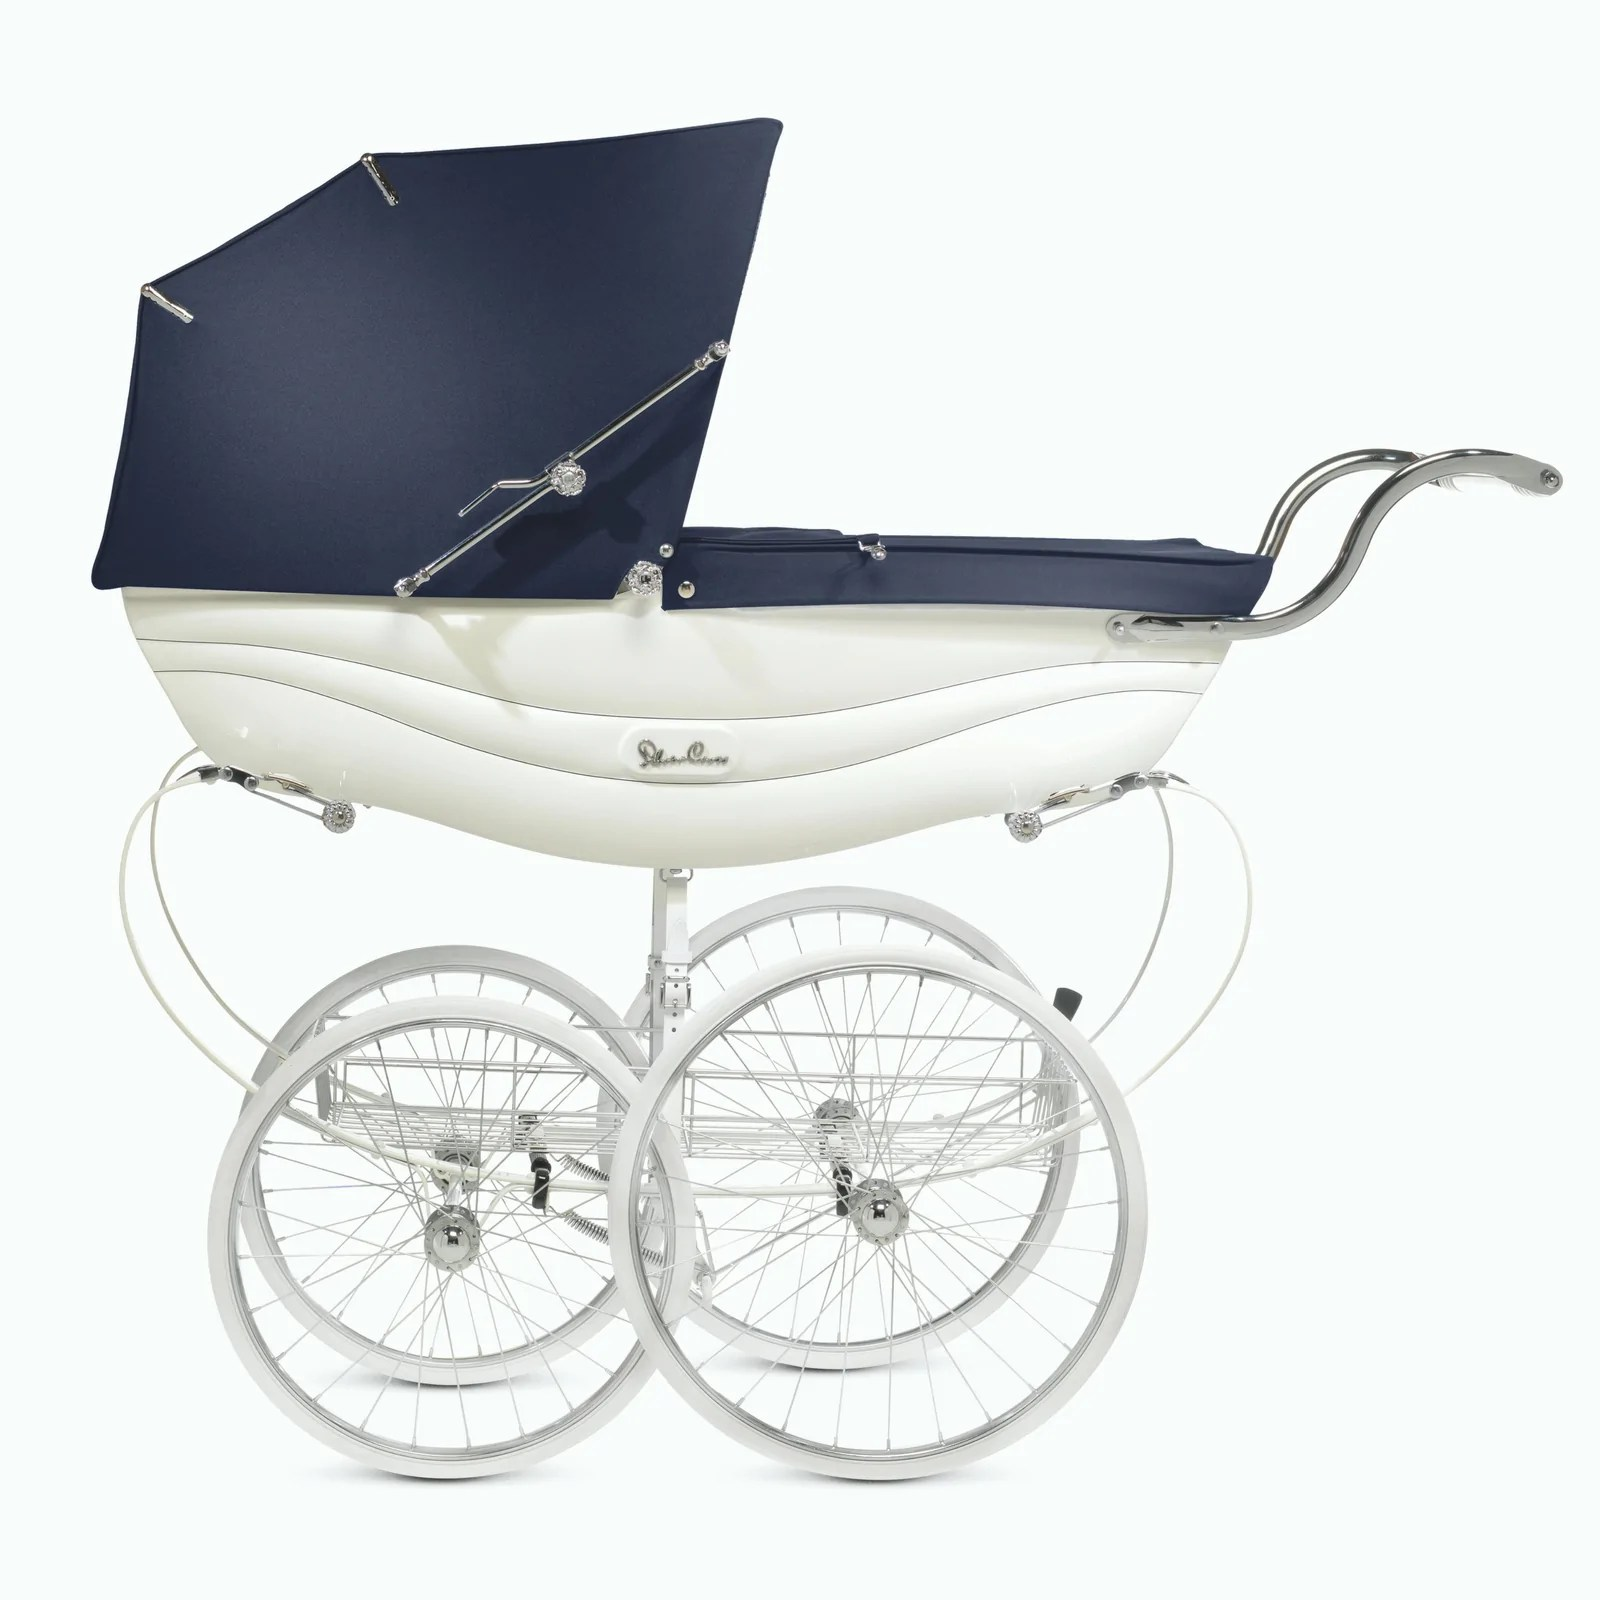 Newborn Stroller Nz Balmoral Pram White And Navy